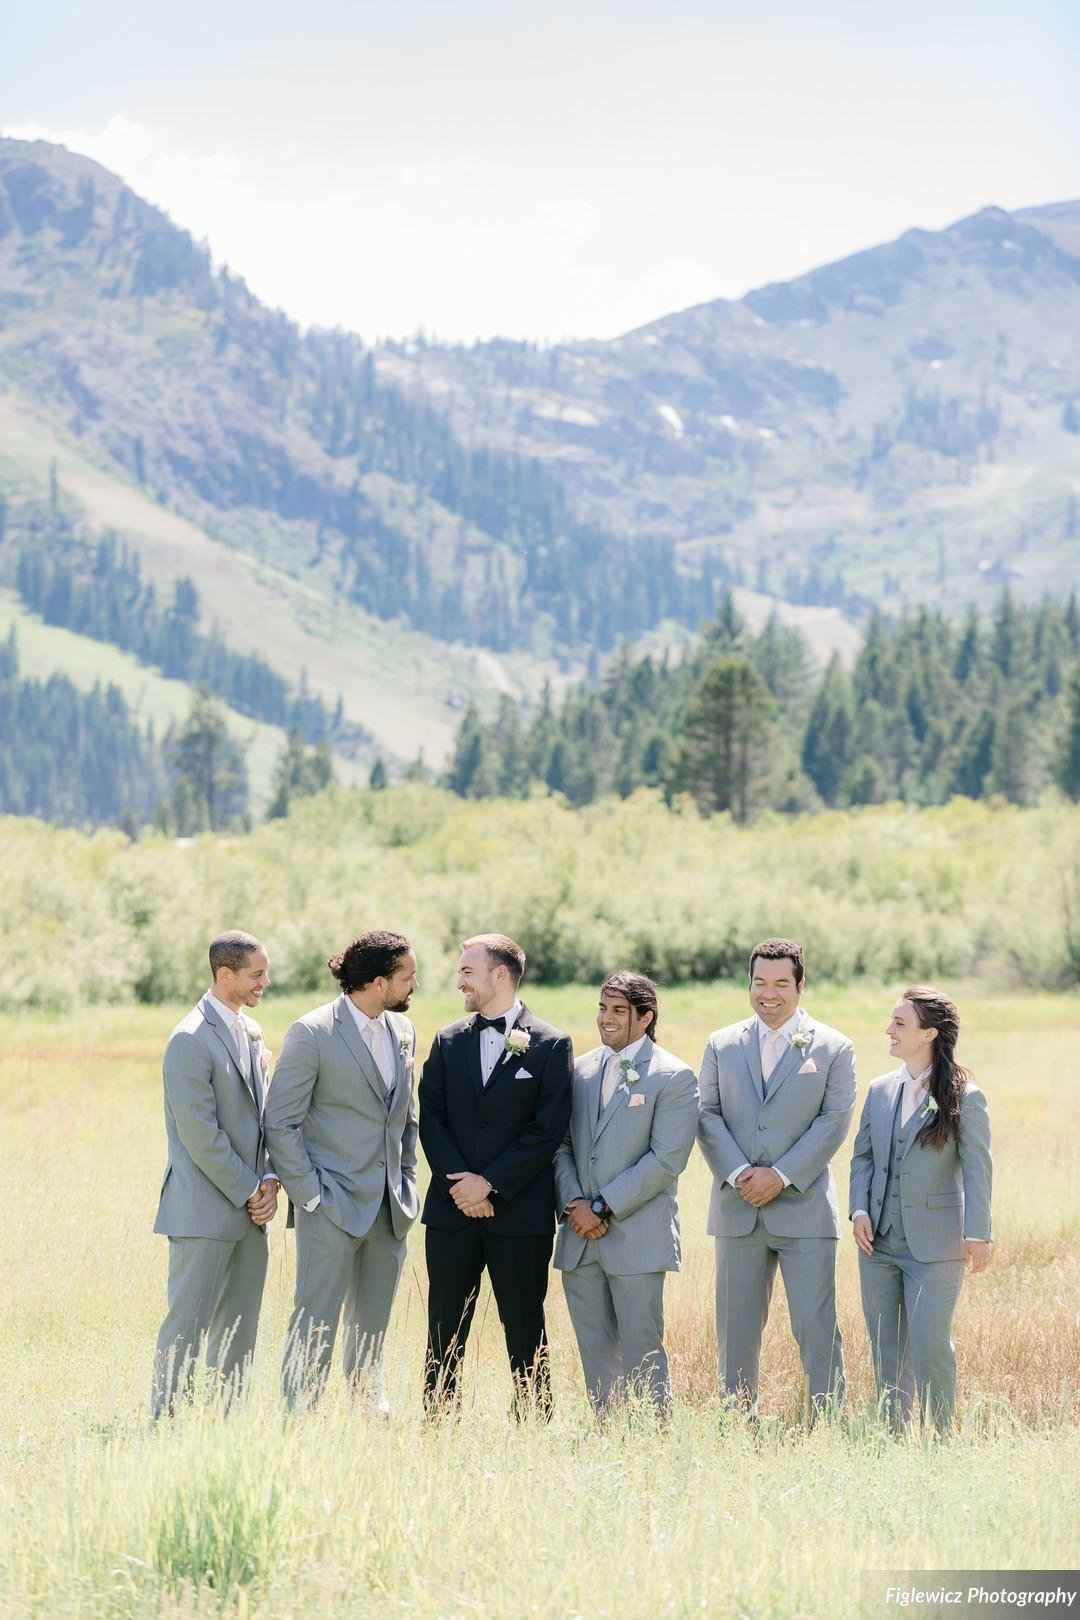 Garden_Tinsley_FiglewiczPhotography_LakeTahoeWeddingSquawValleyCreekTaylorBrendan00036_big